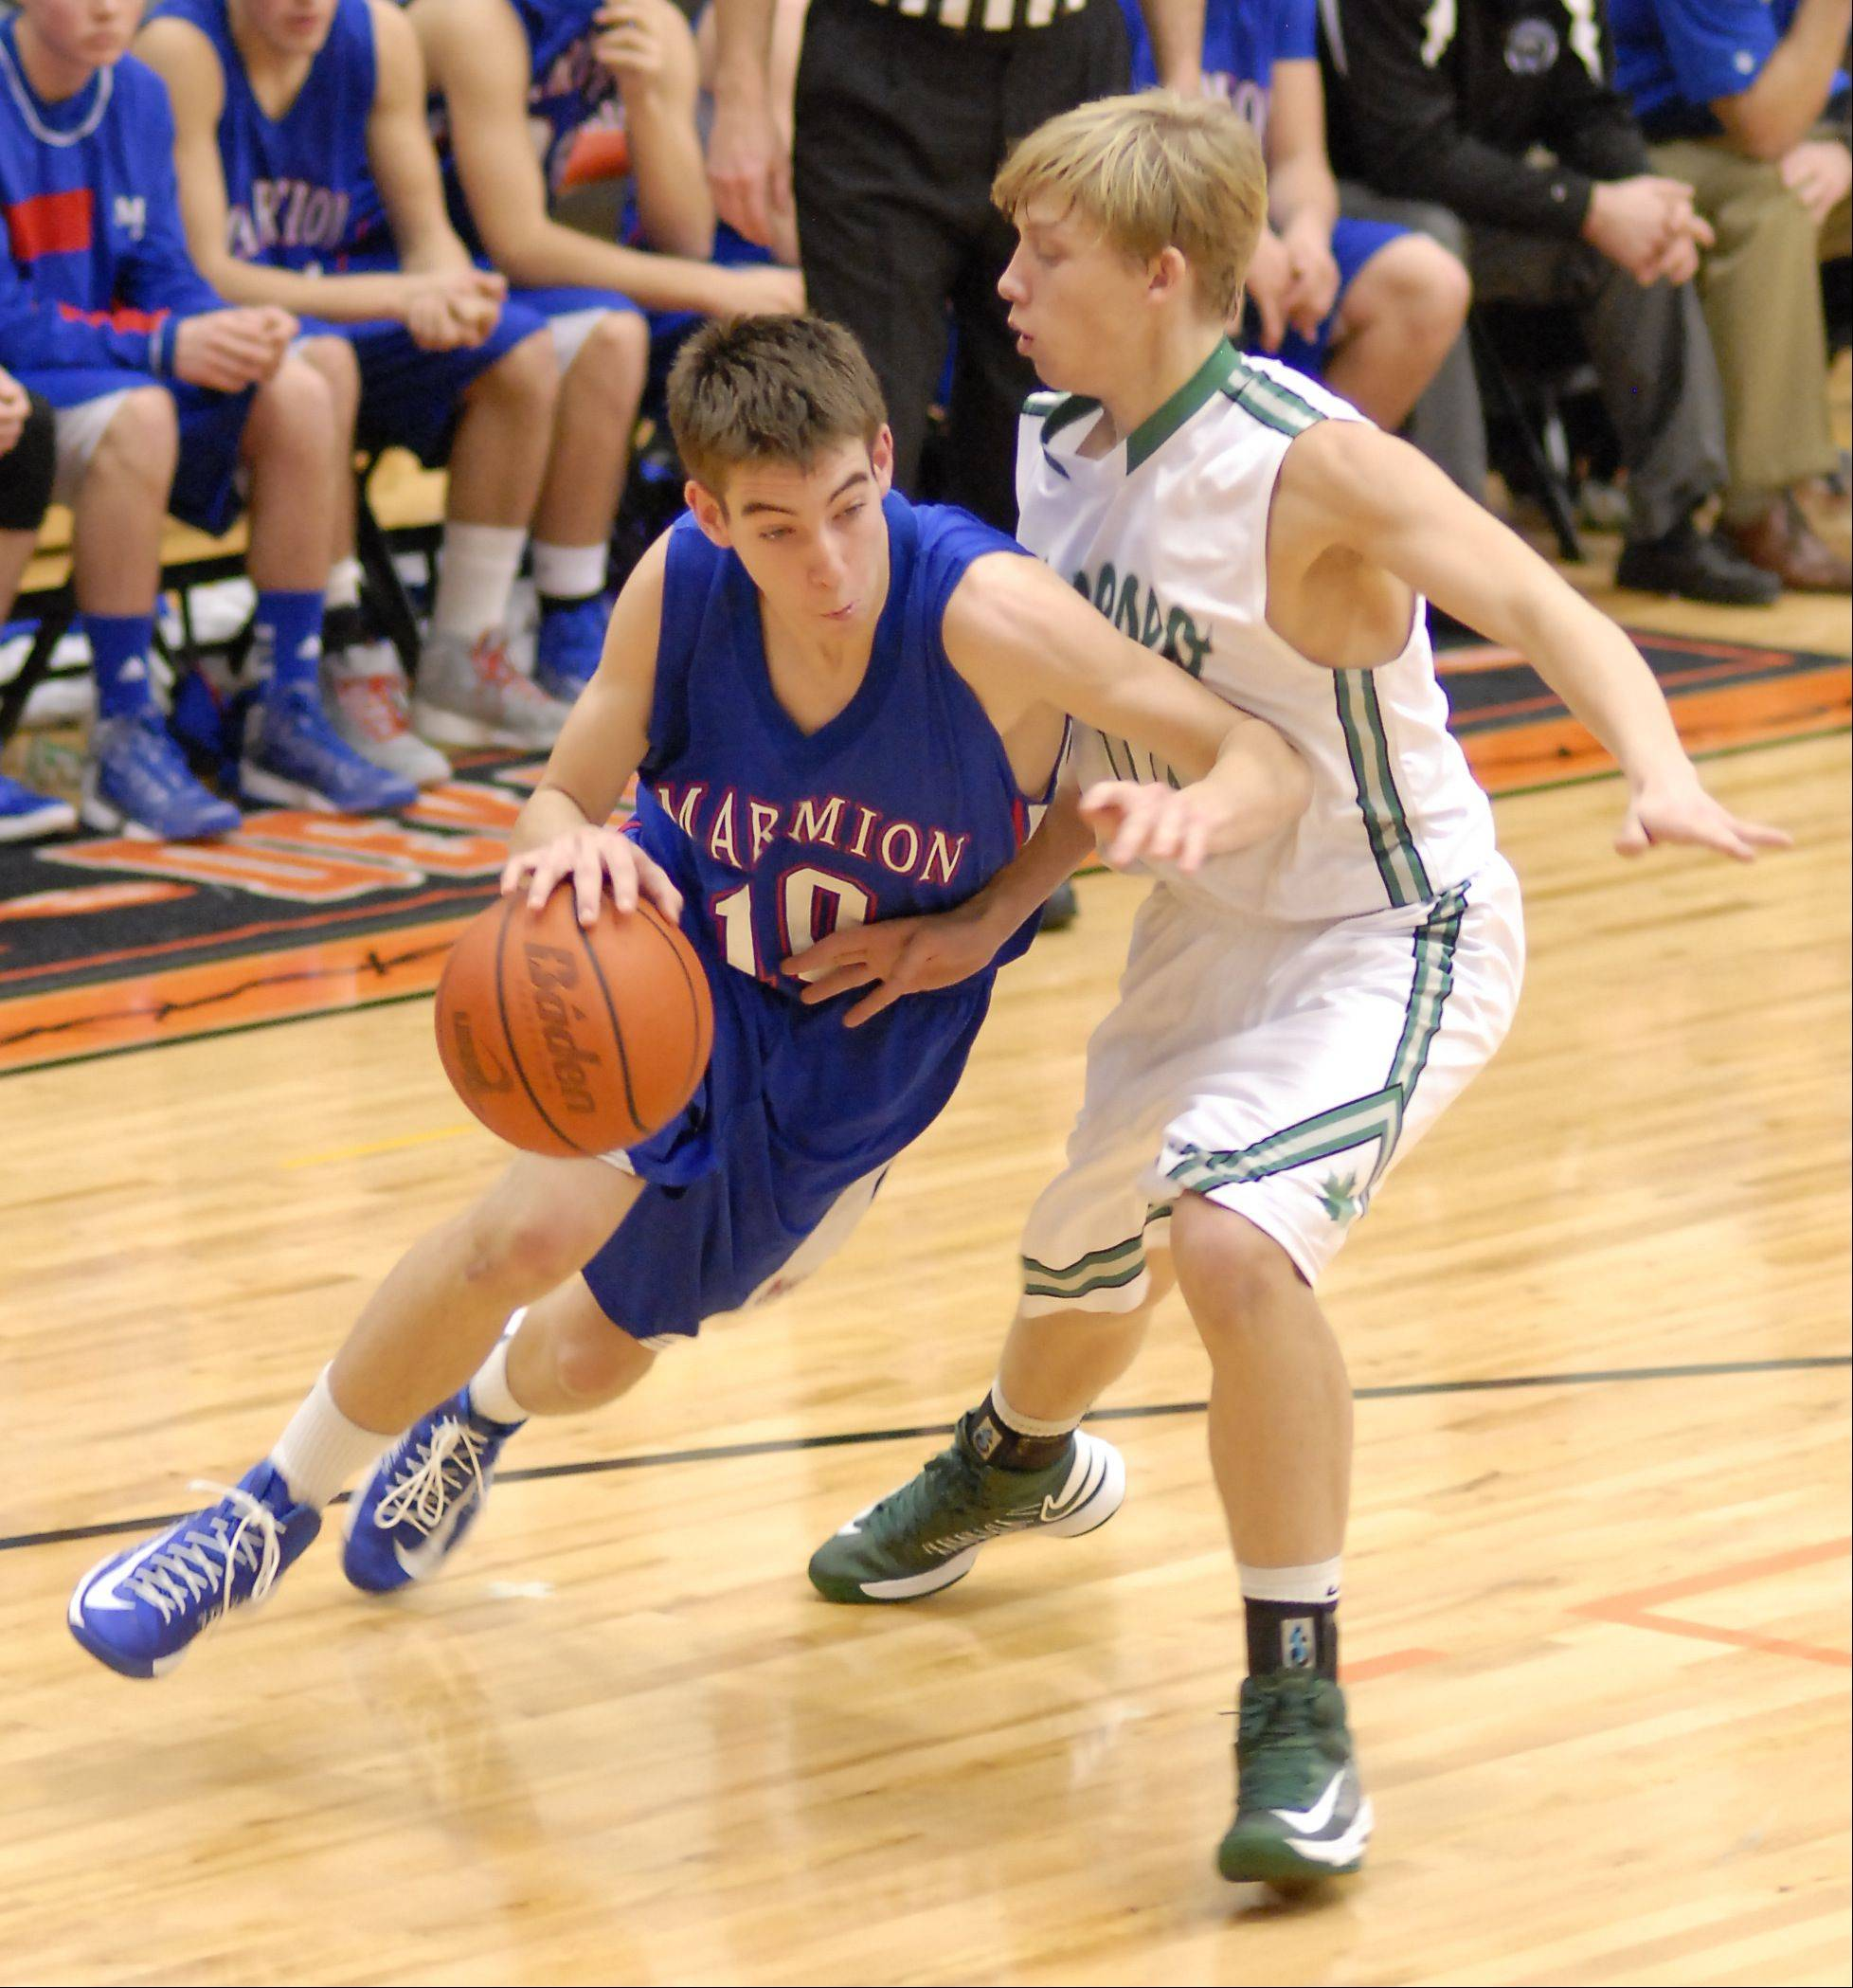 Images from the Marmion vs. Geneseo boys basketball game Saturday, December 22, 2012 in DeKalb.